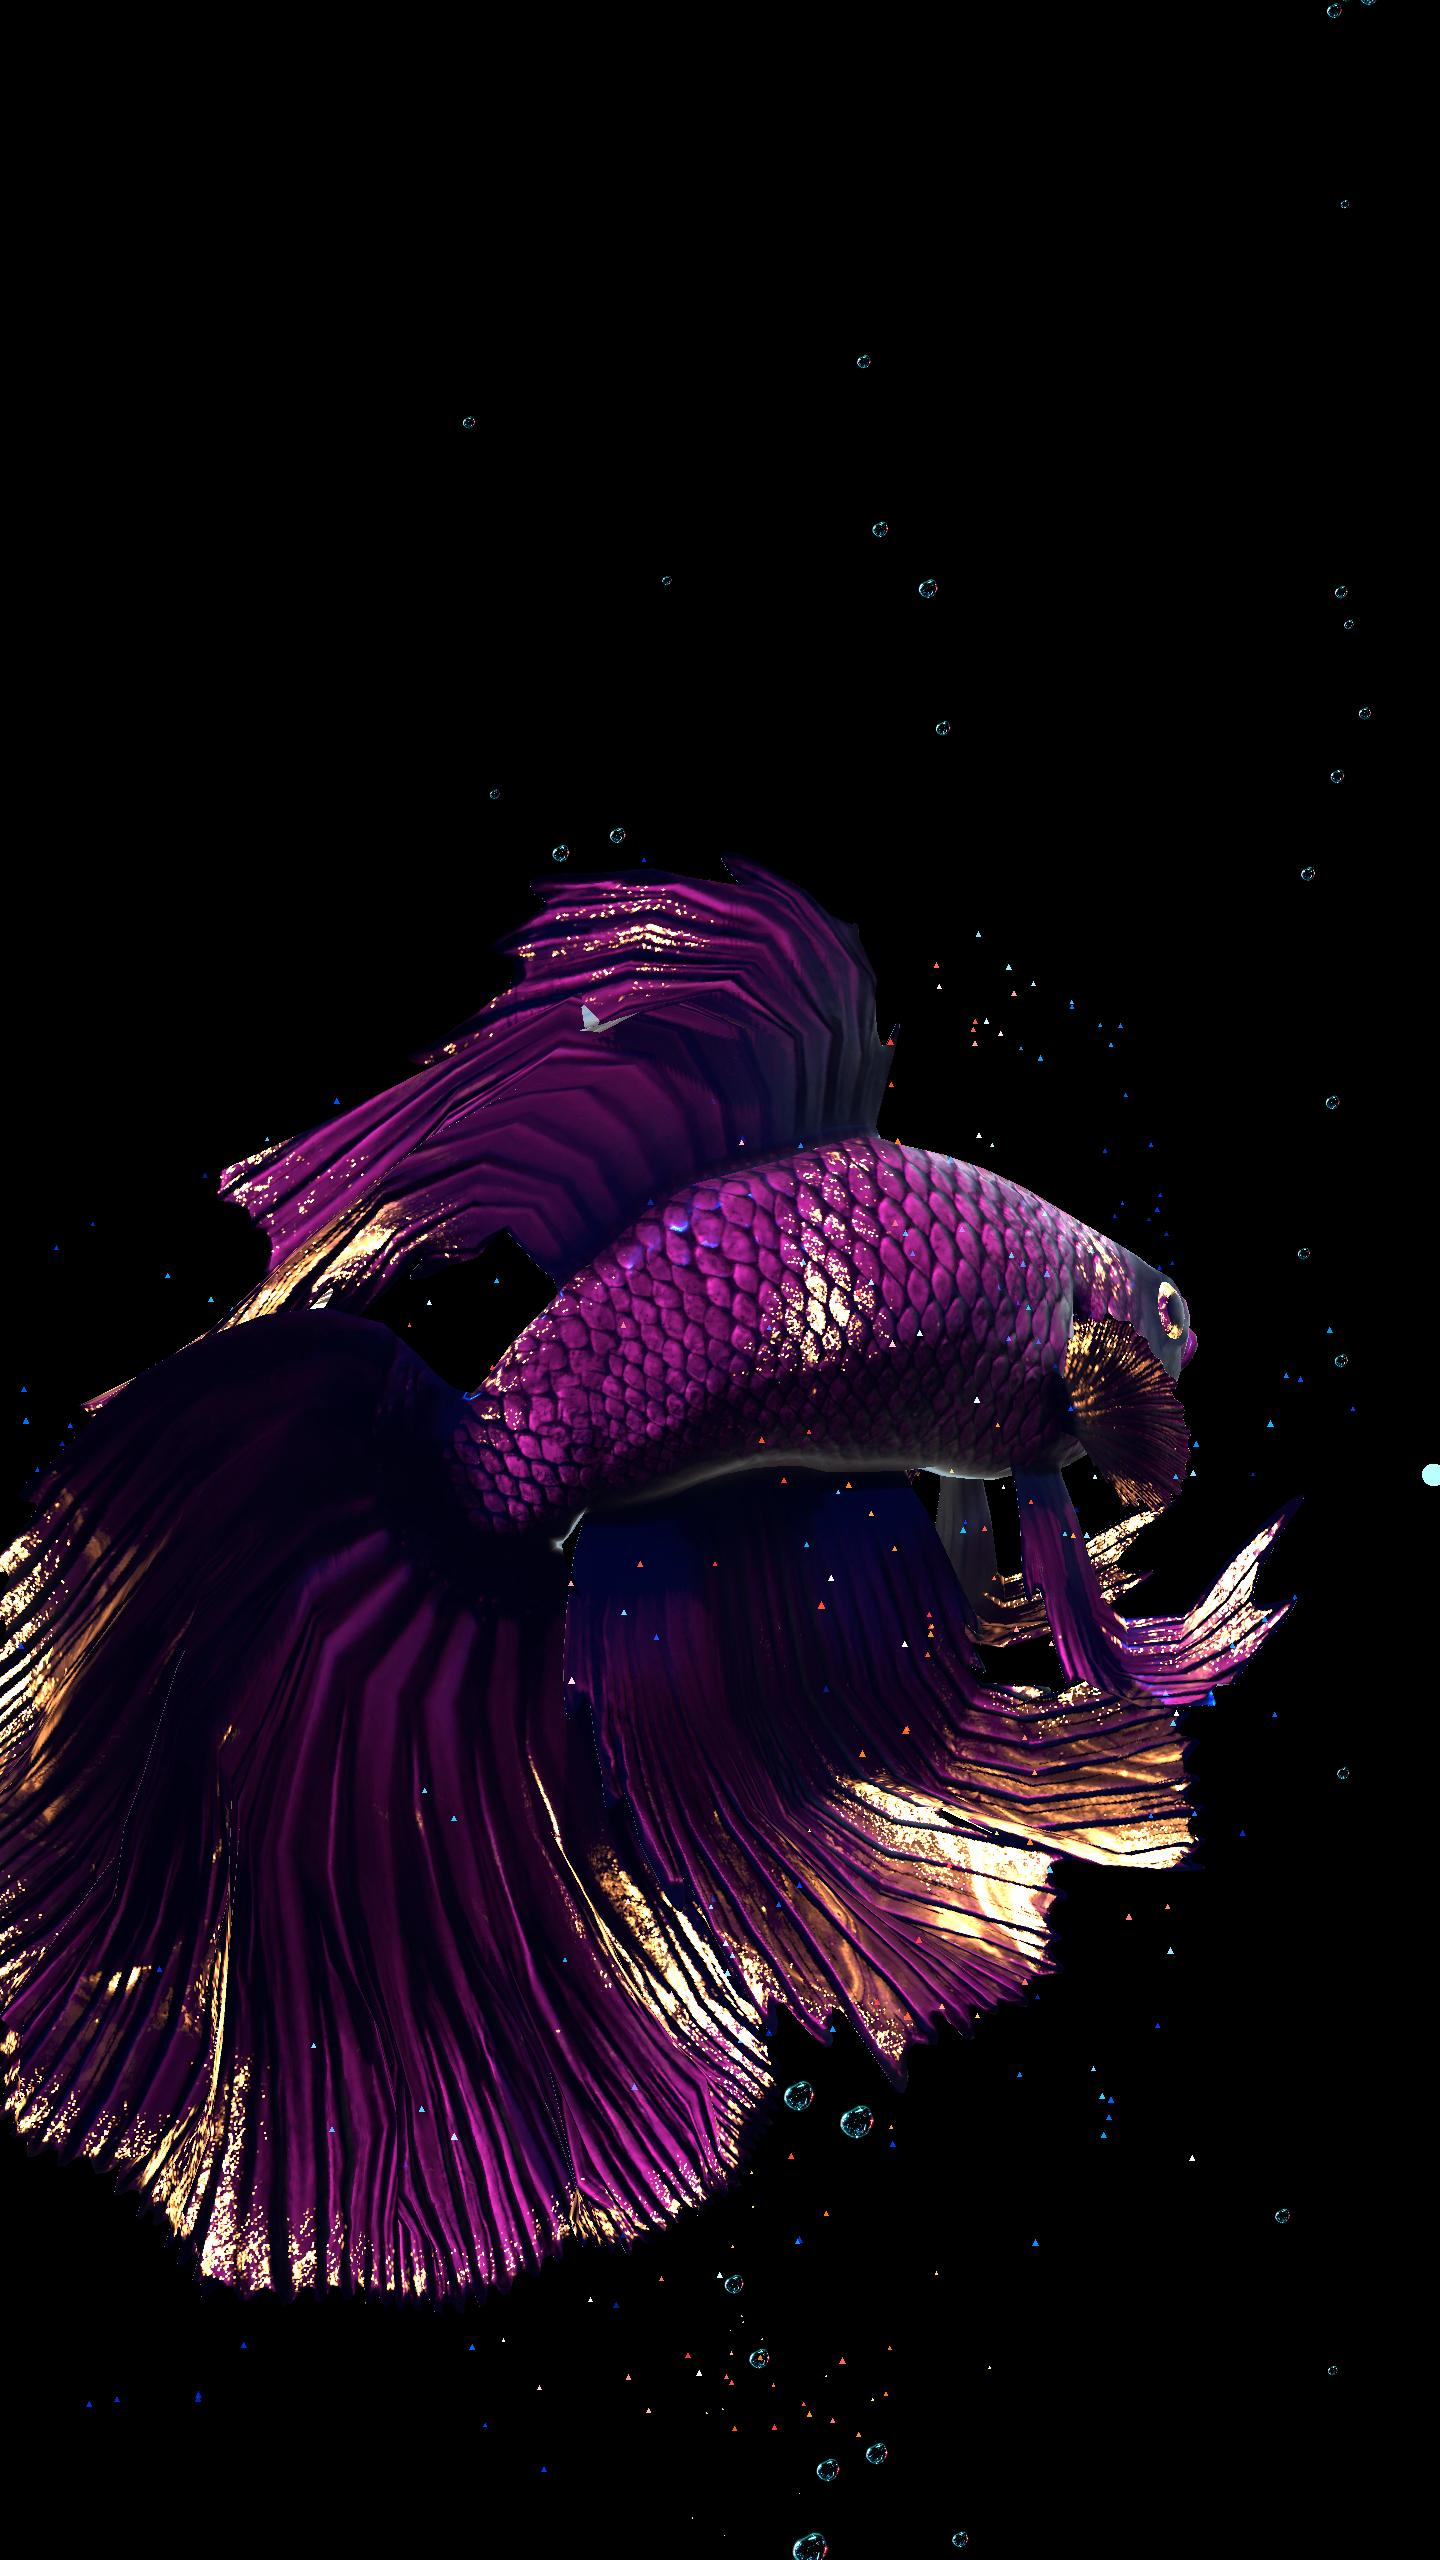 Betta Fish Live Wallpaper FREE for Android - APK Download